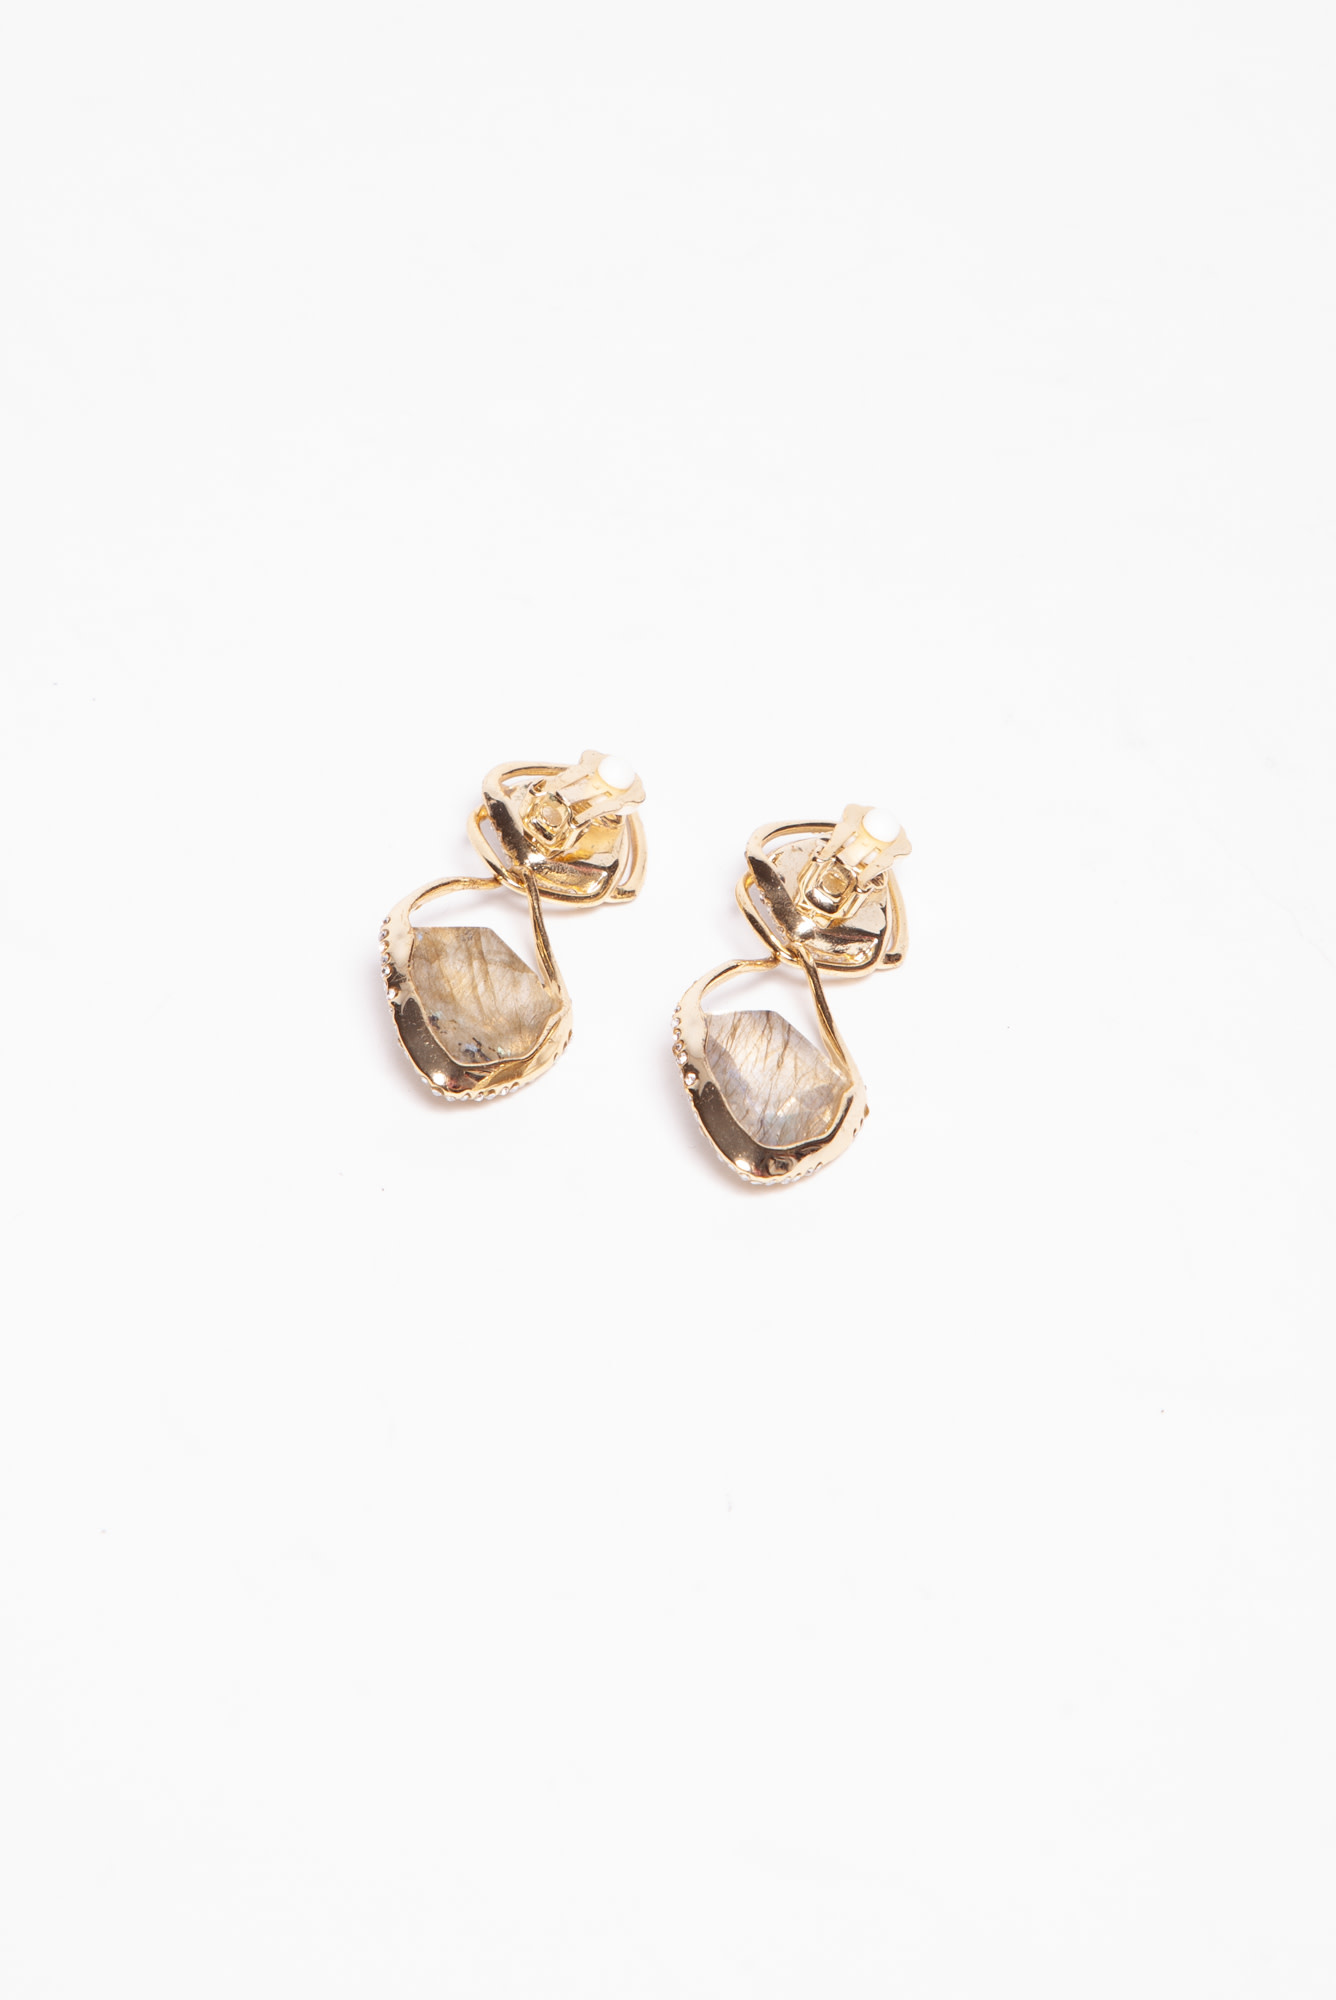 Alexis Bittar GOLD EARRINGS WITH TRANSPARENT STONES